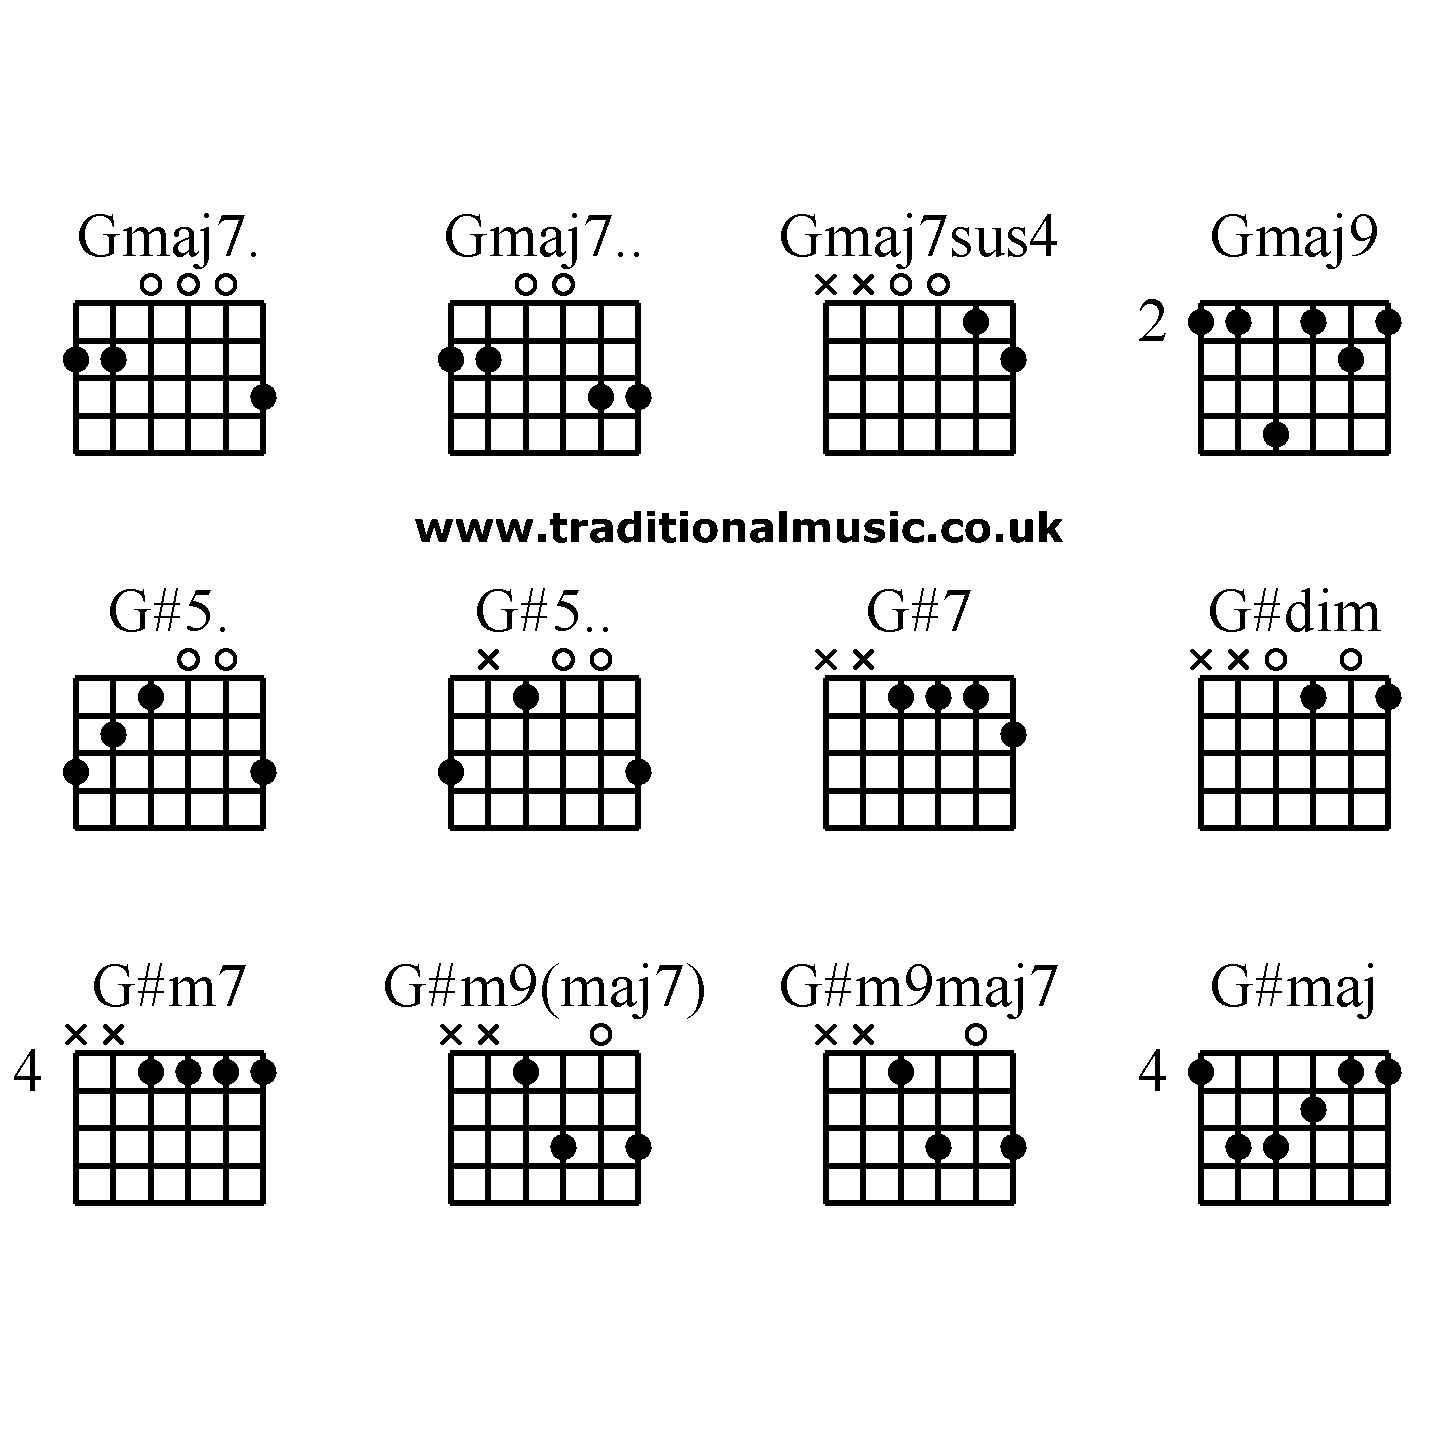 Guitar Chords Advanced Gmaj7 Gmaj7 Gmaj7sus4 Gmaj9 G5 G5 G7